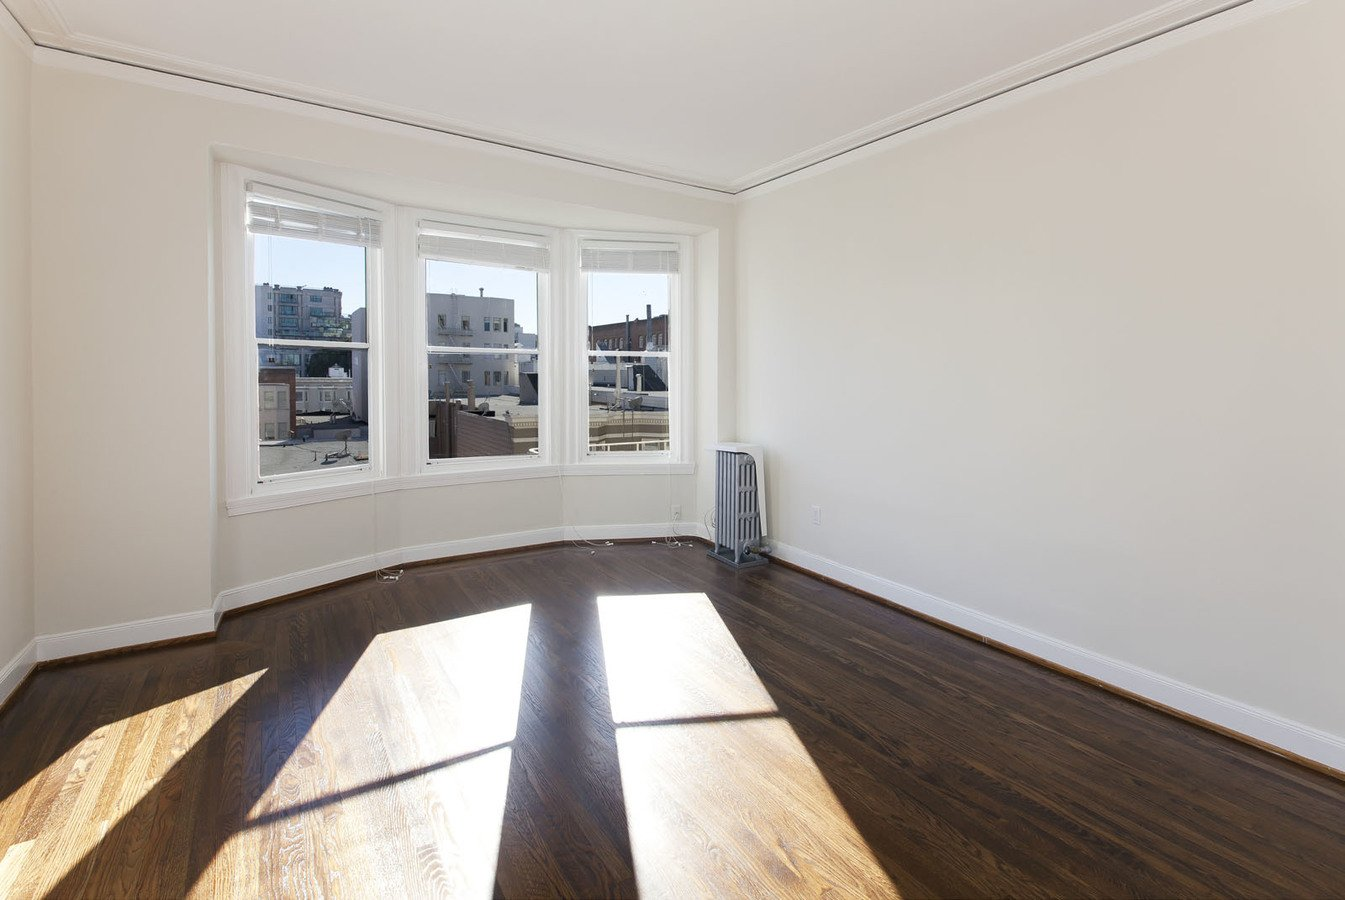 1 Bedroom 1 Bathroom Apartment for rent at 1840 Clay Apartments in San Francisco, CA